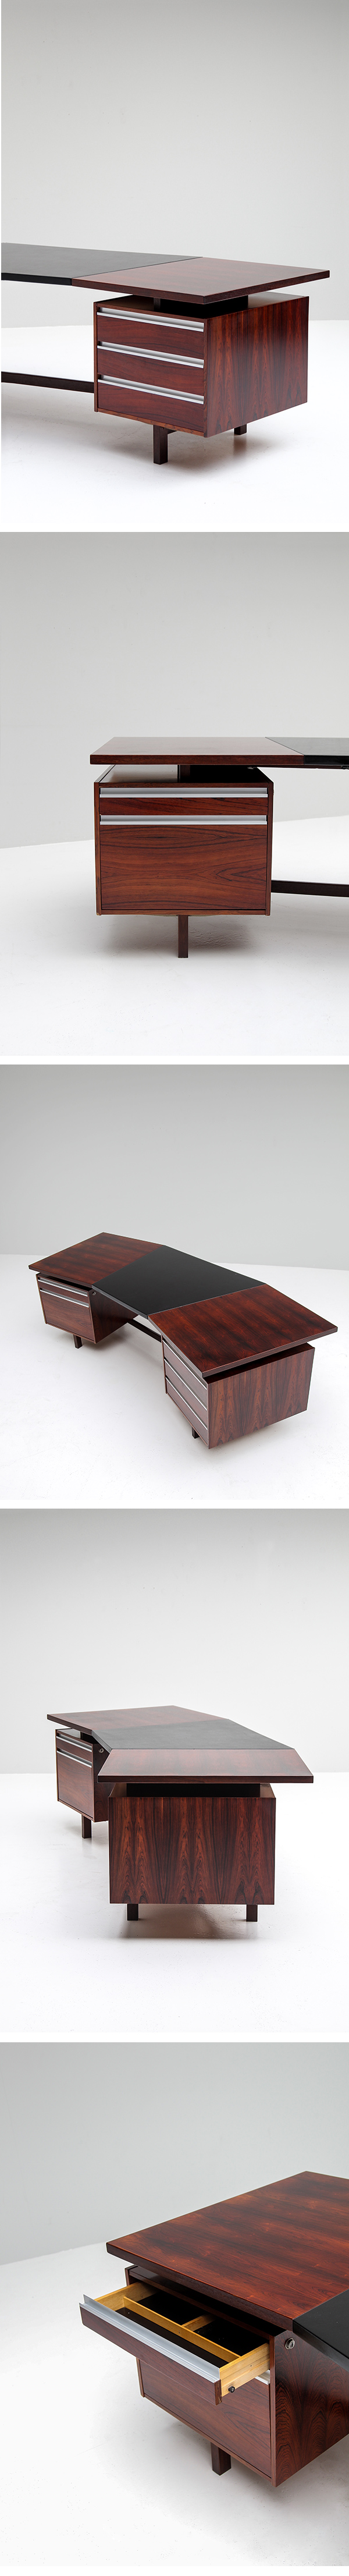 Rosewood, Boomerang, Desk, Danish, Modern, 1970s, Leather